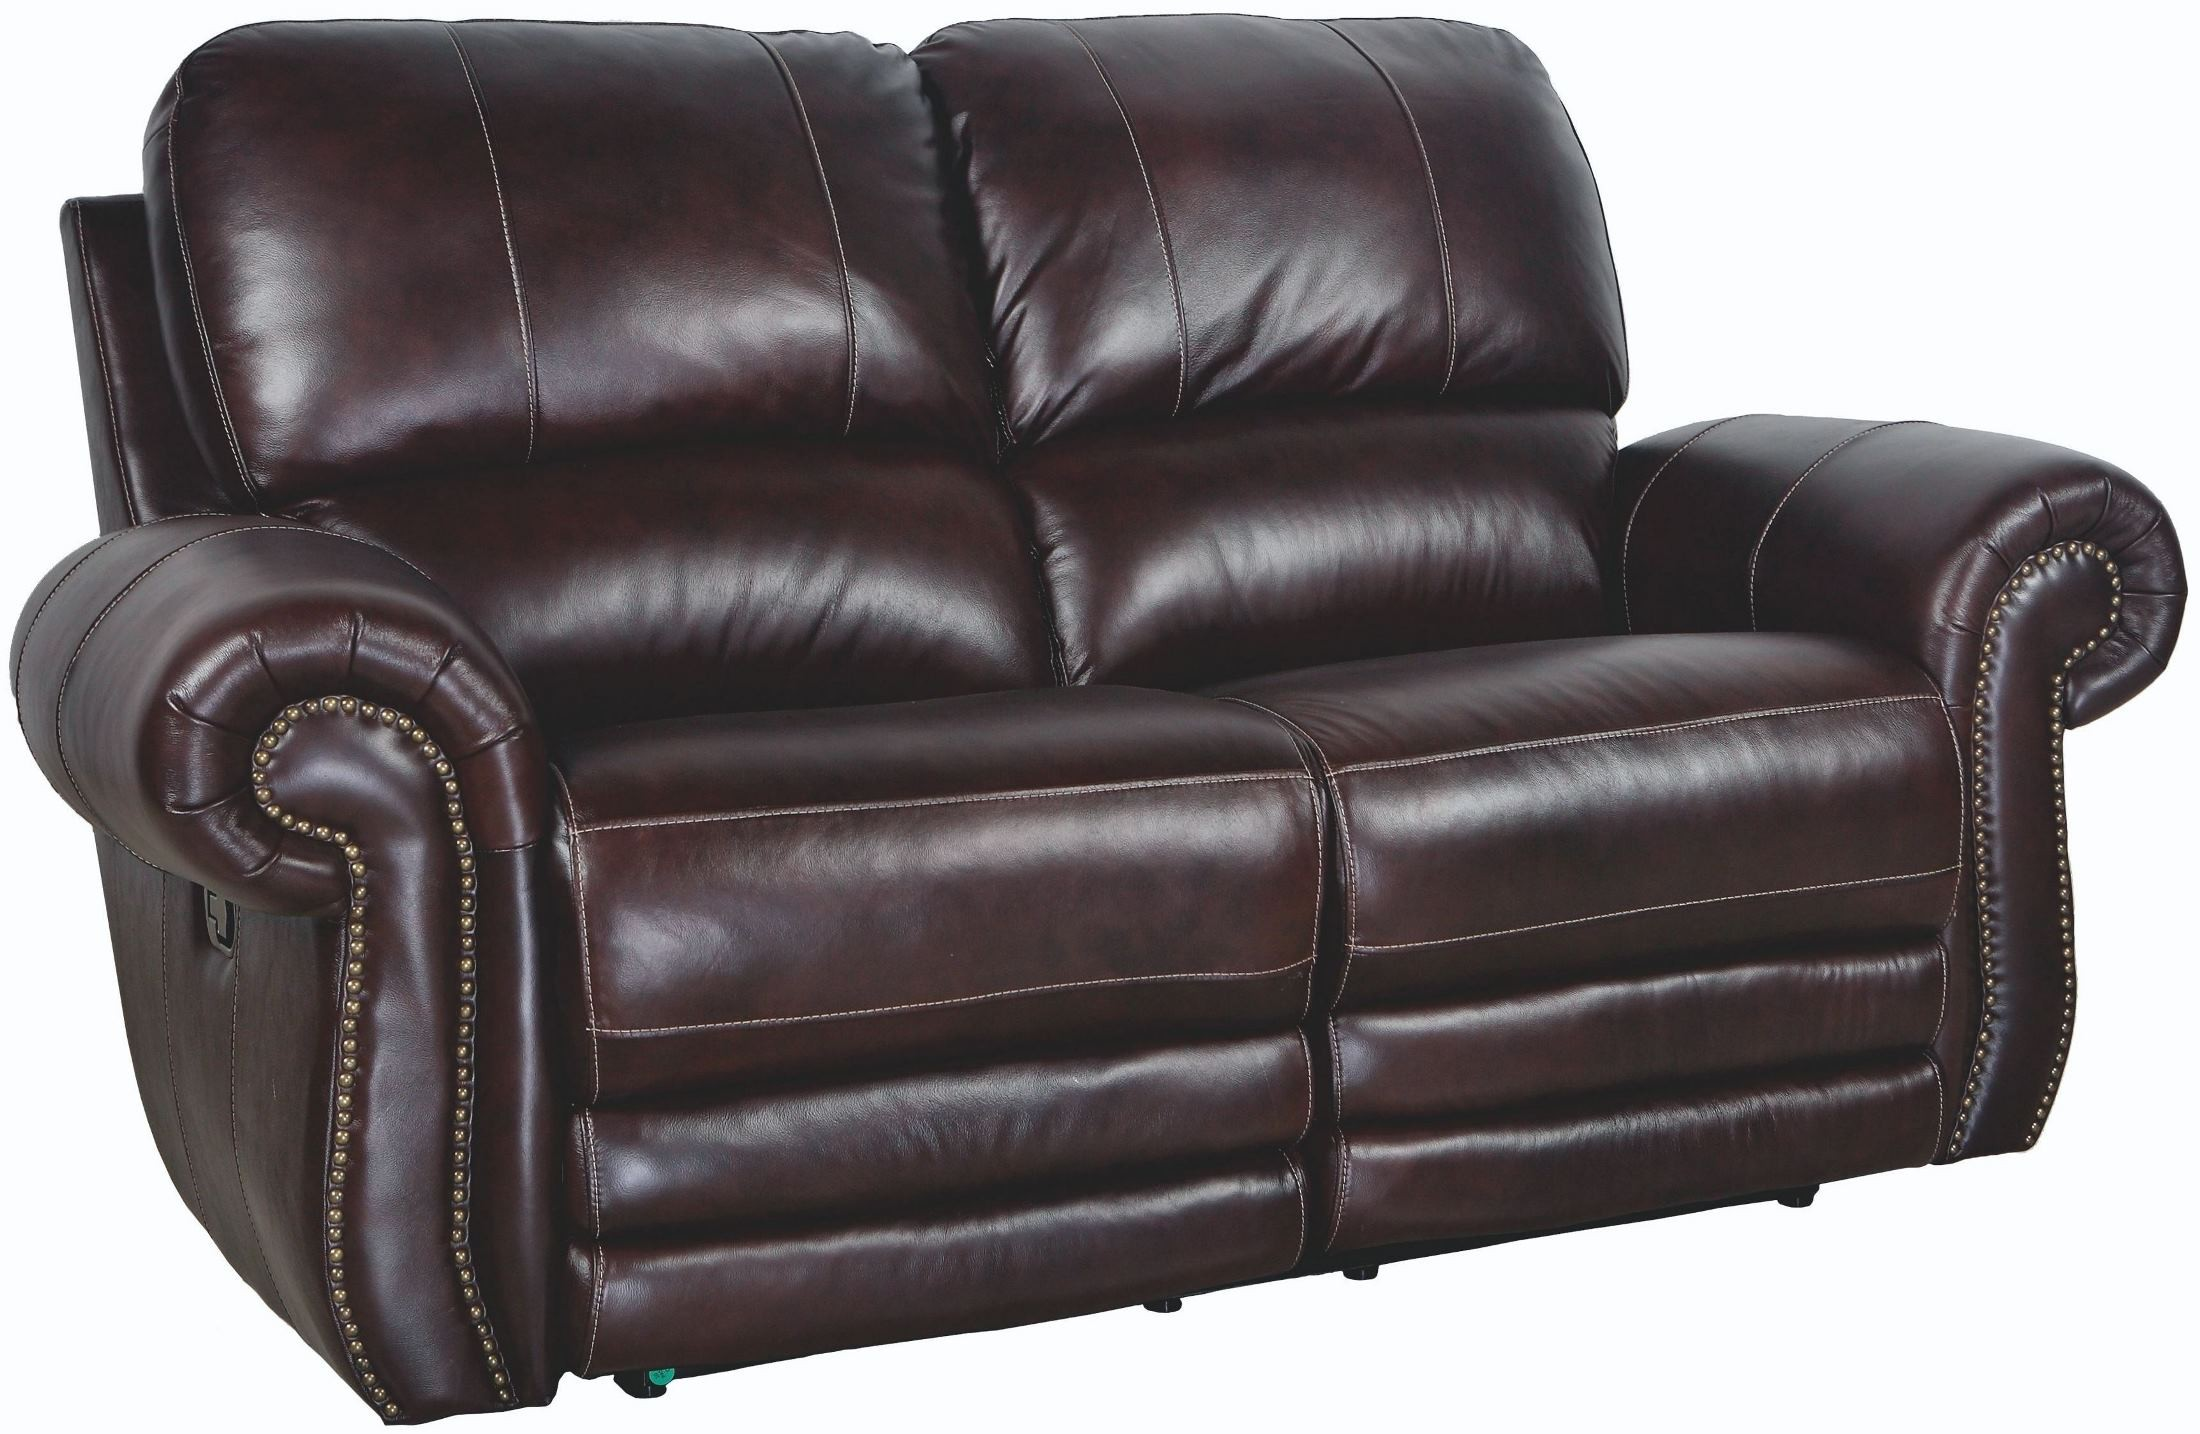 Rossi Dark Brown Power Reclining Loveseat L2652 20p Bbn New Classics